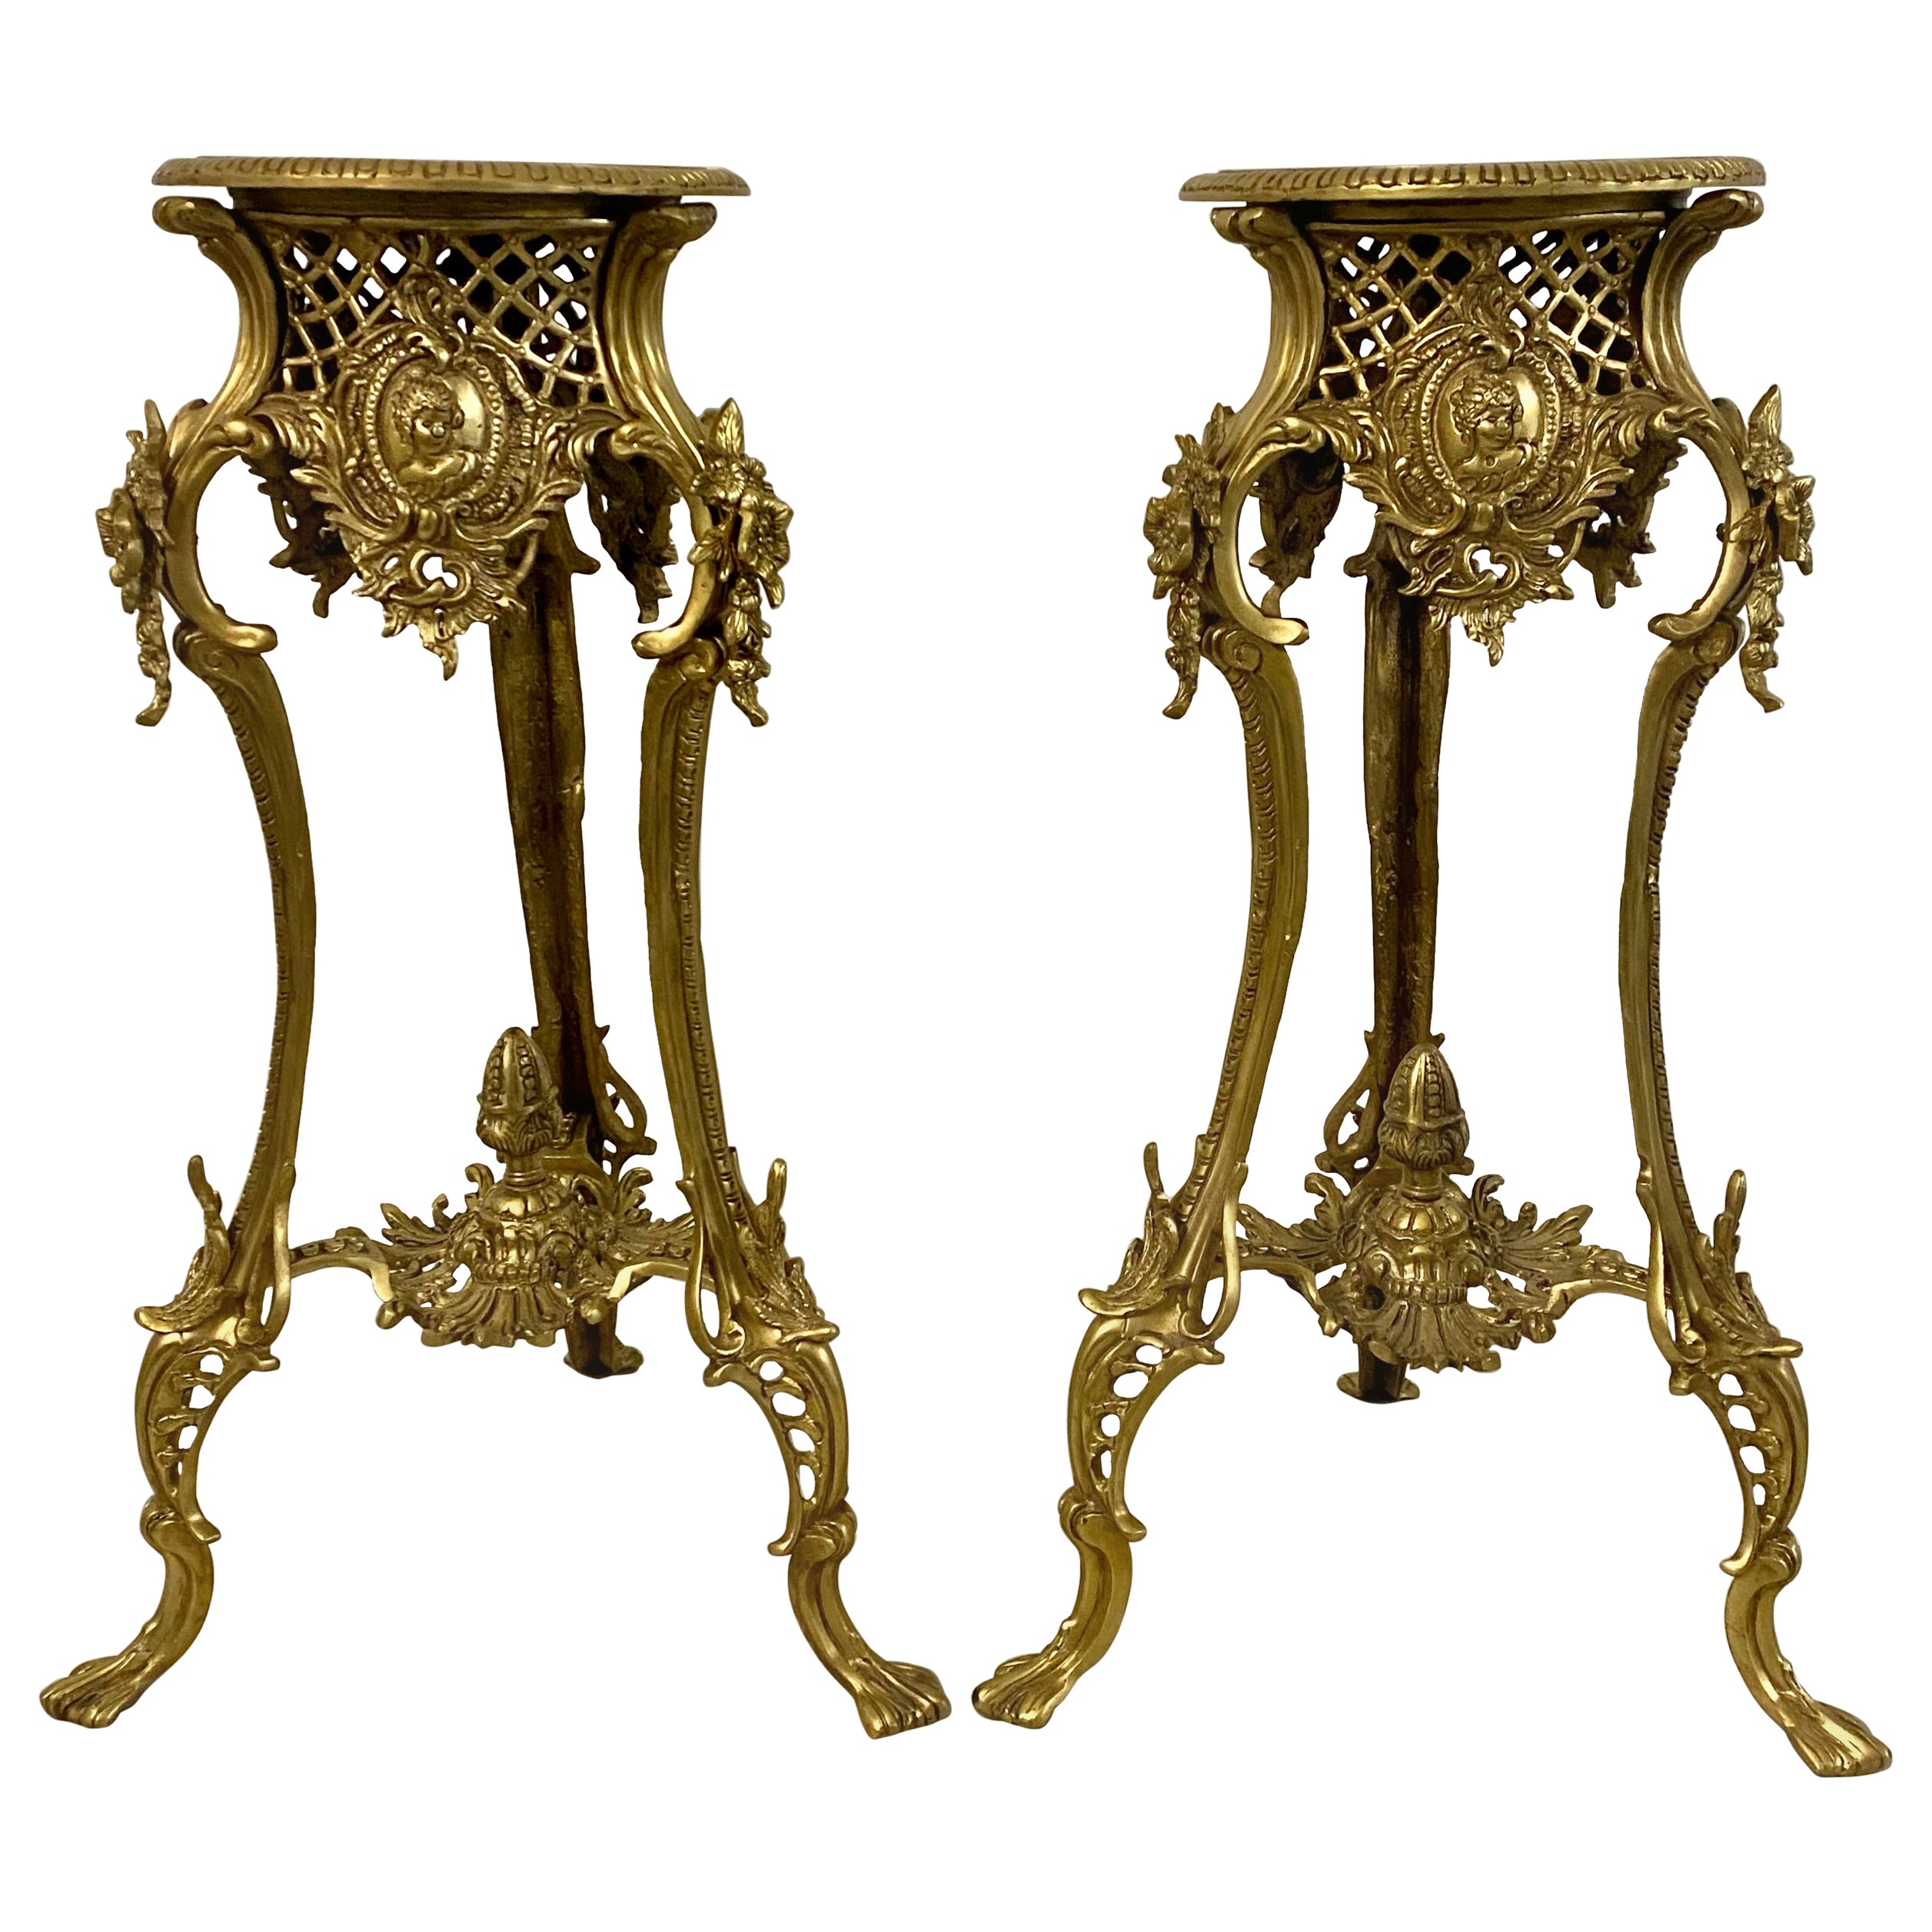 Pair of Vintage Gilded Bronze Side Tables with Inlay, circa 1940